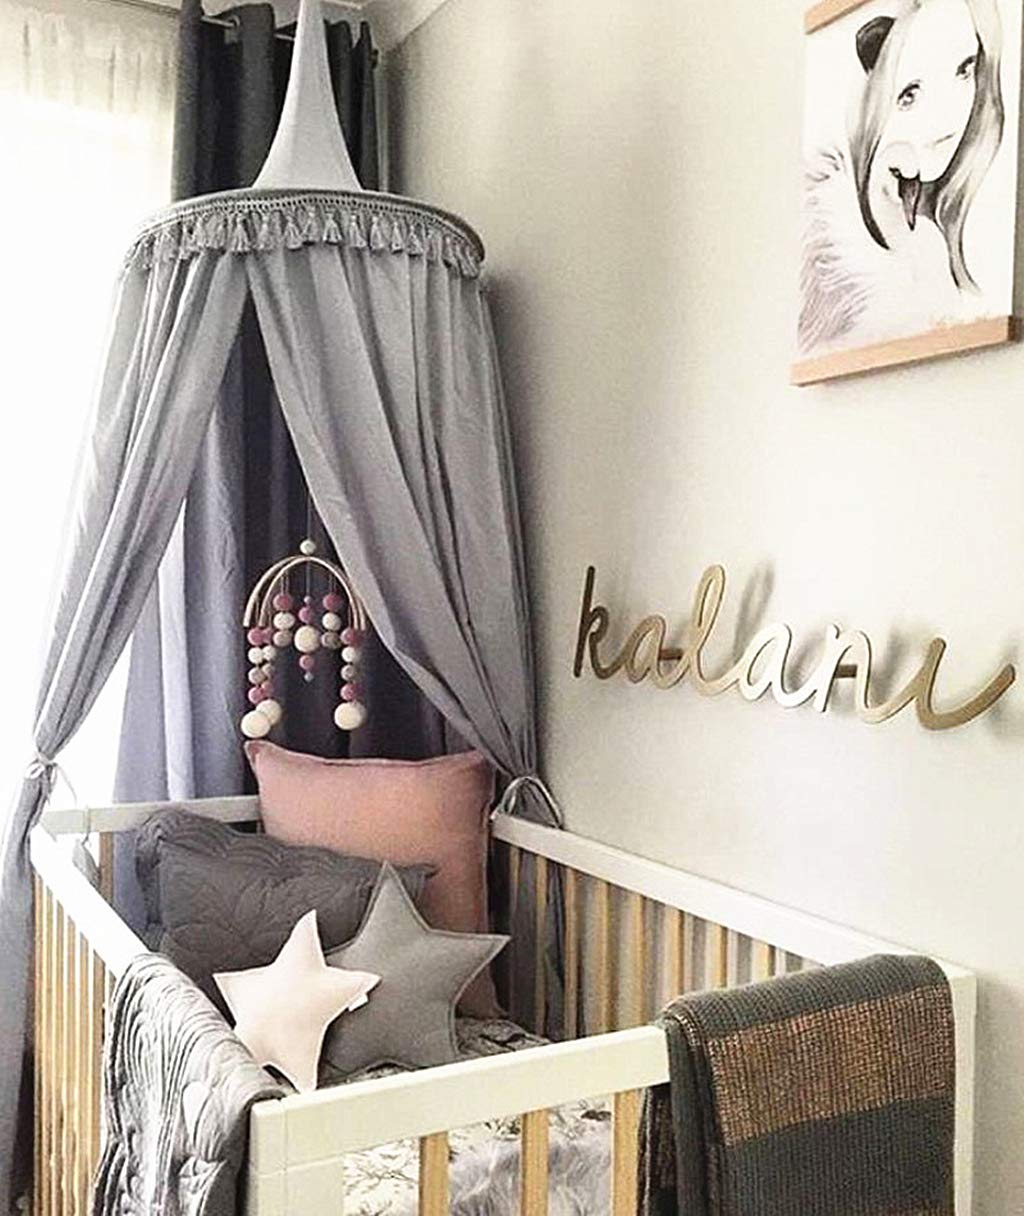 White Bed Canopy Round Dome with tassel Cotton Mosquito Net Big Size Cotton Bed Canopy Kids Bedroom Decoration 60 * 240cm Bed Canopy for Reading Room